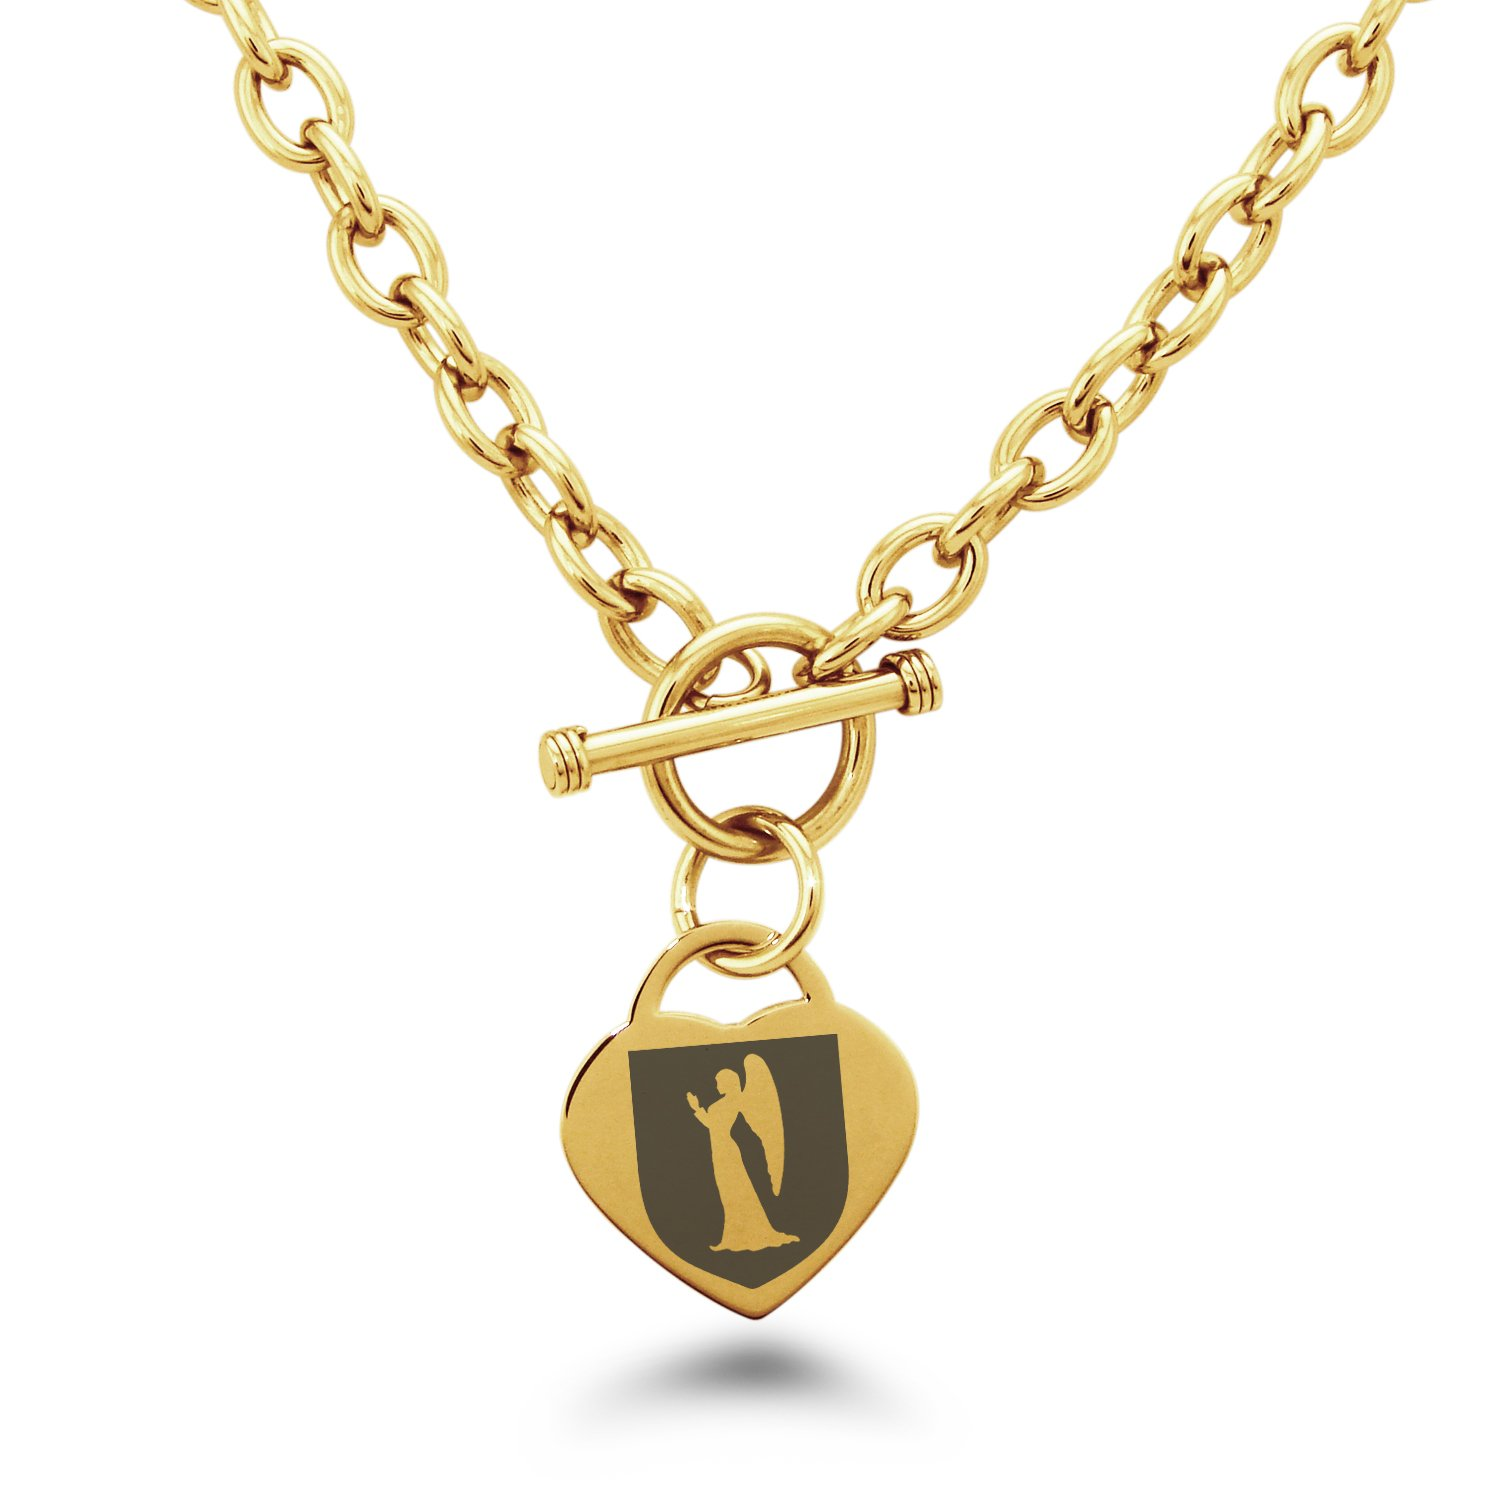 Tioneer Gold Plated Stainless Steel Angel Divinity Coat of Arms Shield Symbols Heart Charm, Necklace Only